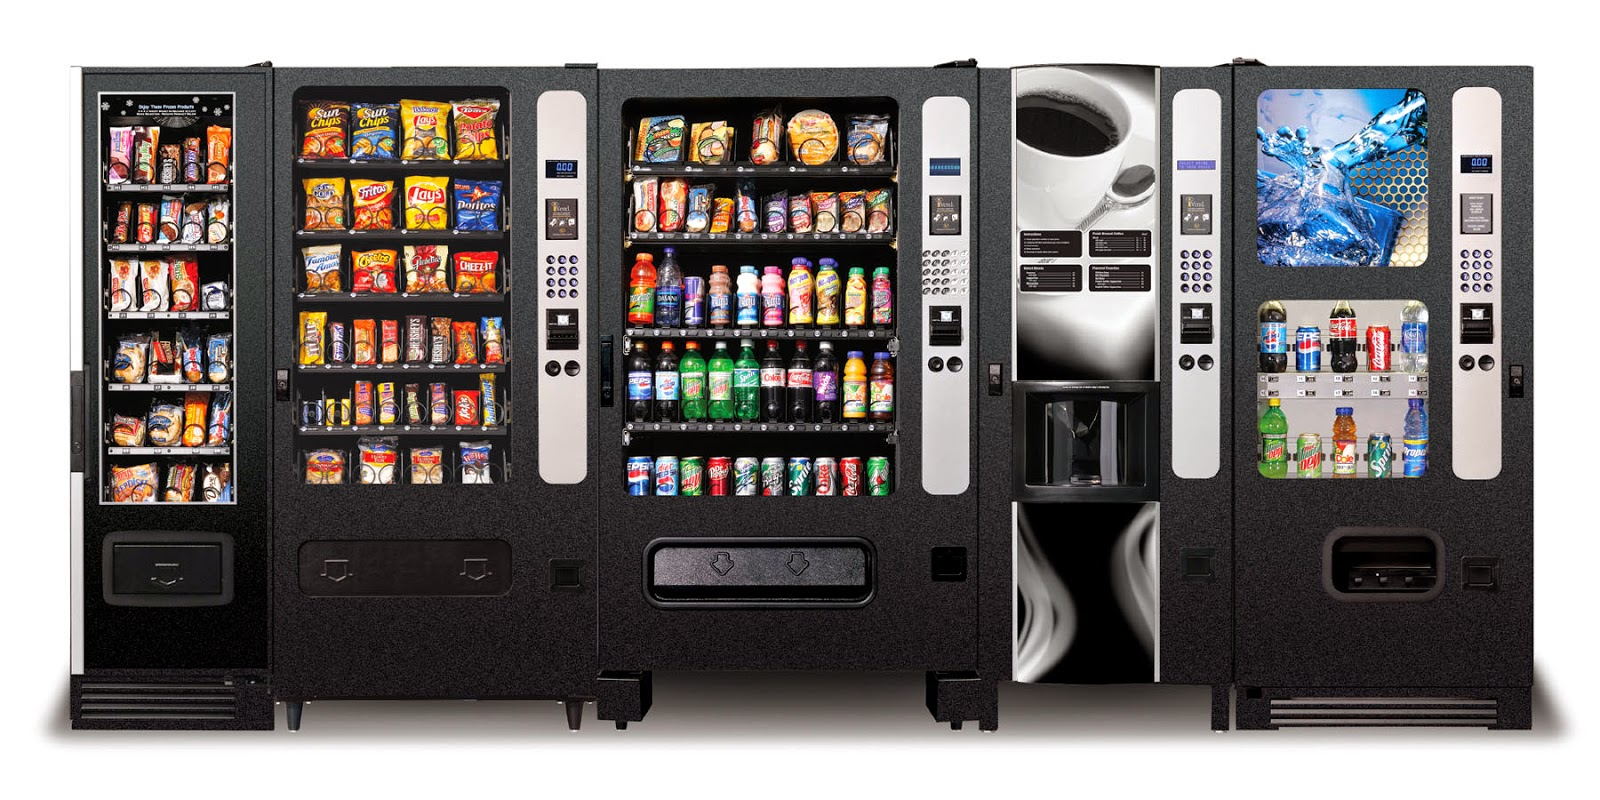 How to hack vending machine? How to get free drink from vending